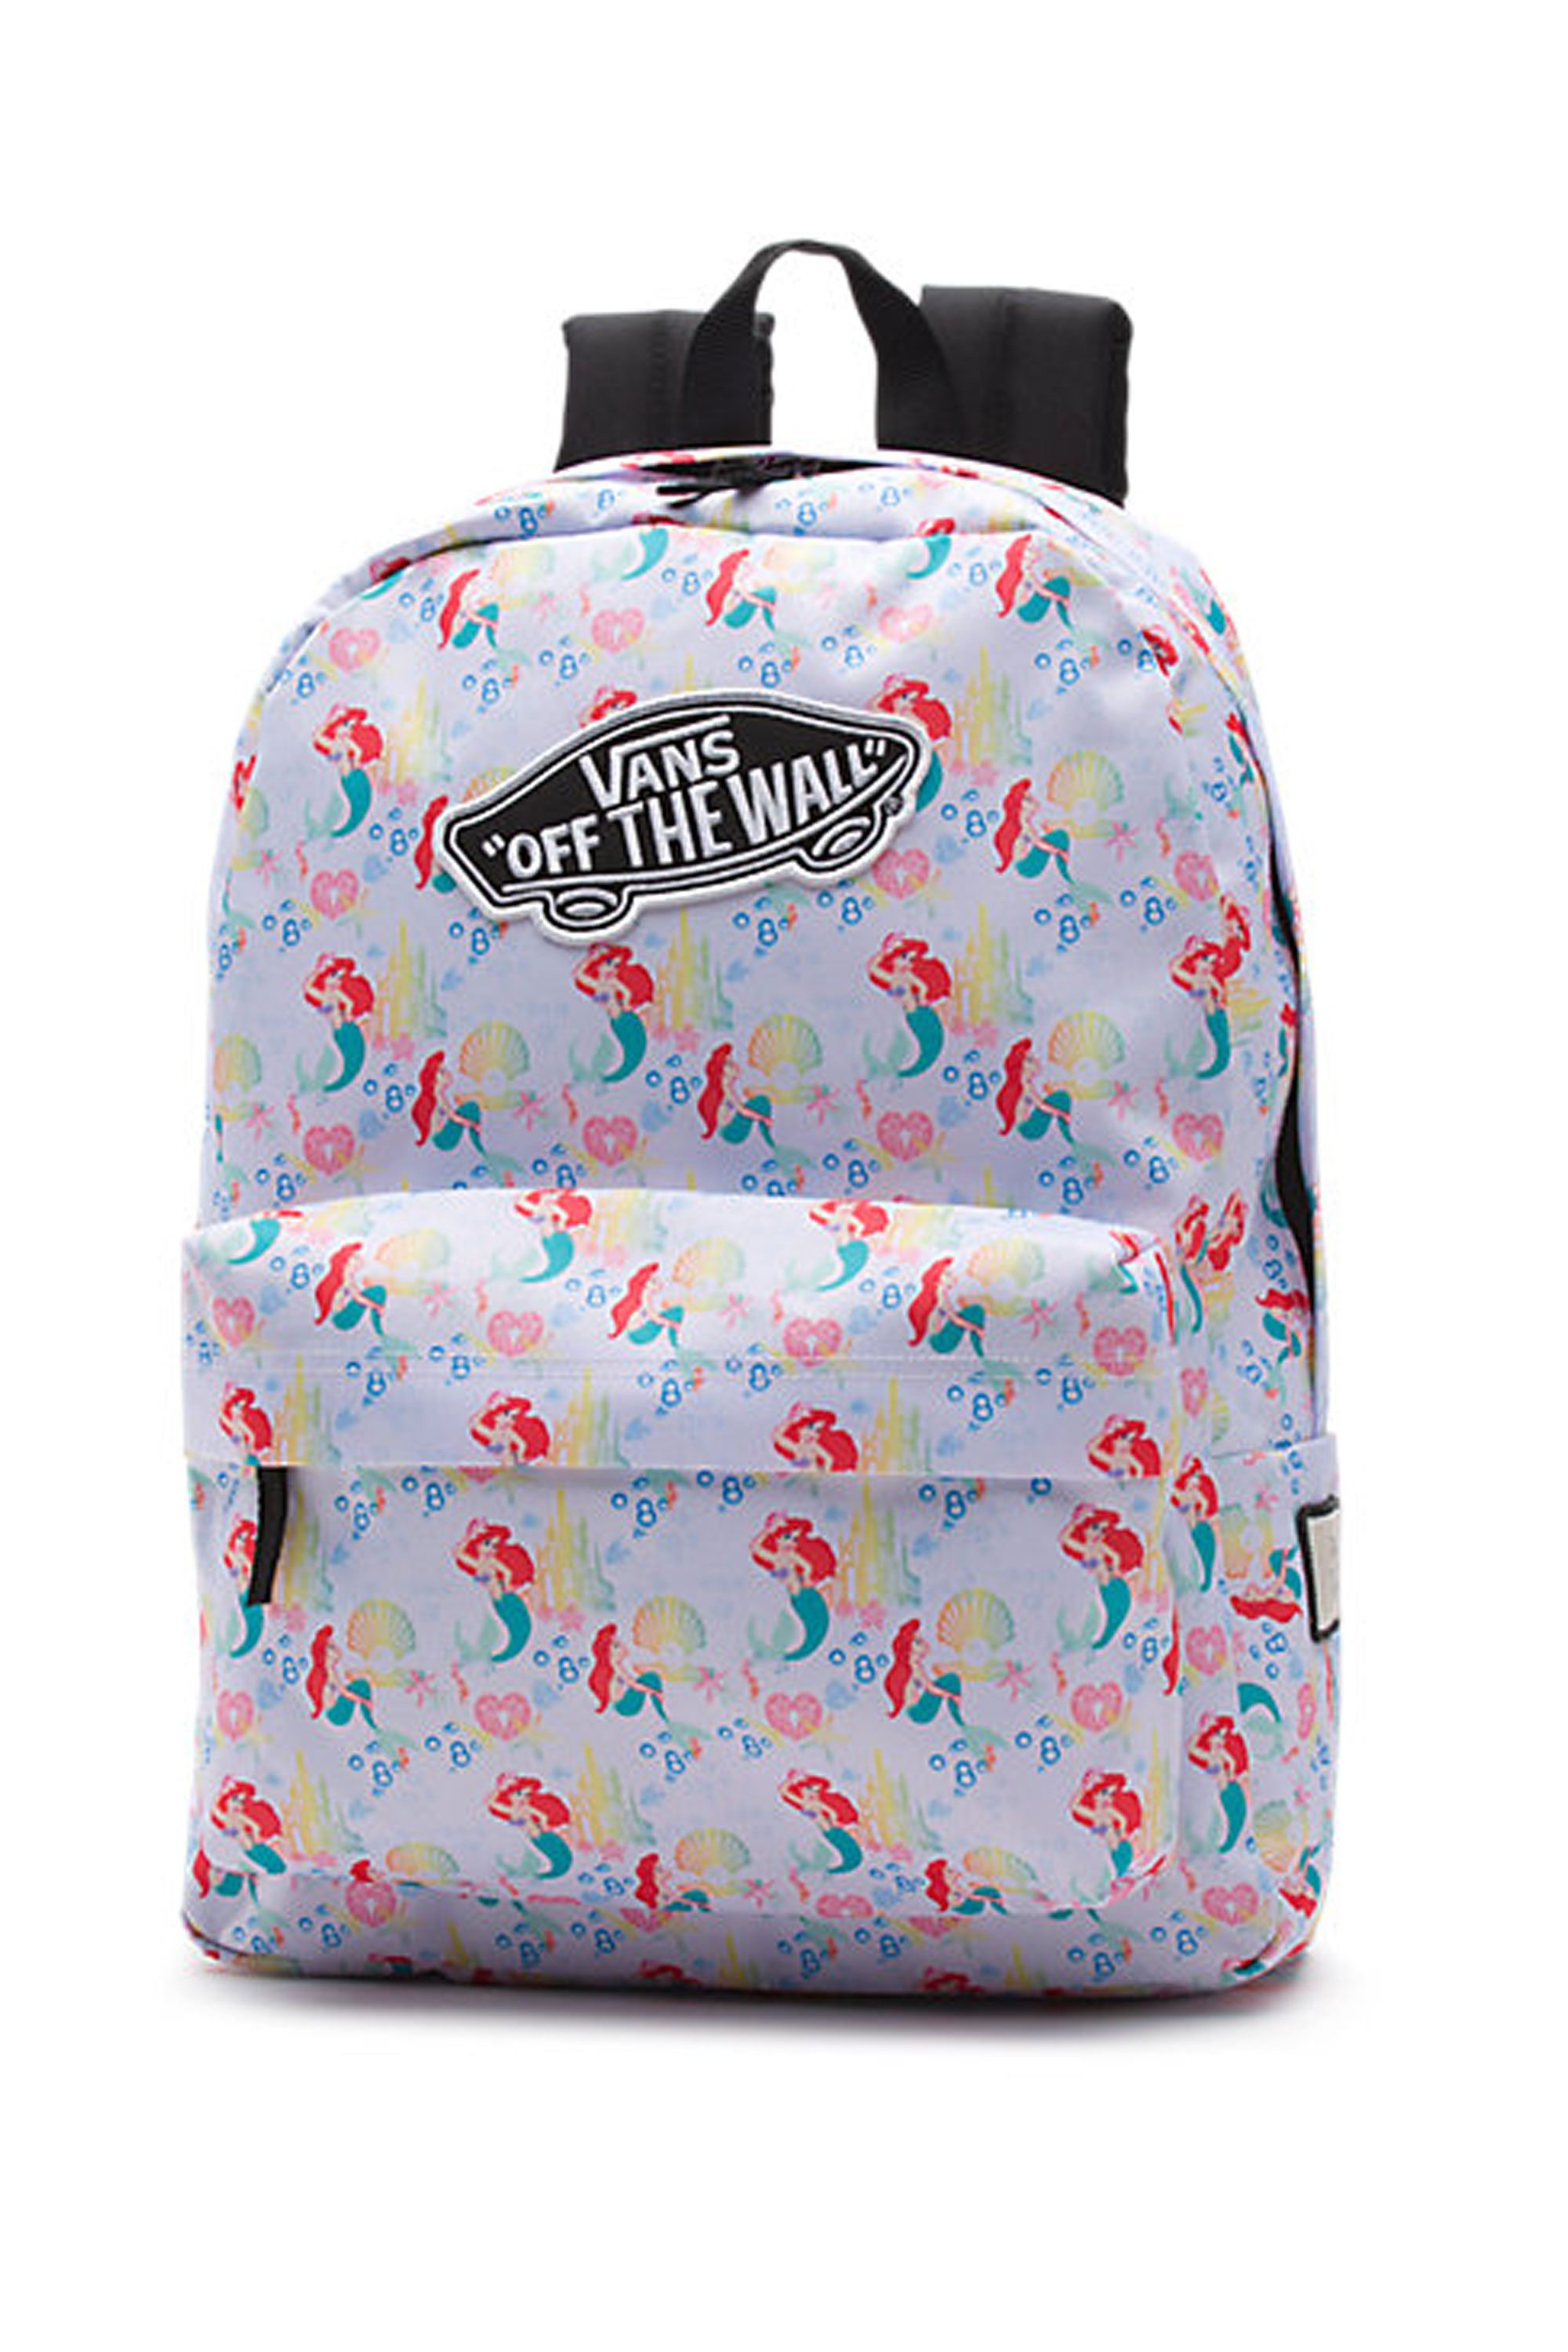 5e708dbe205 ... whistles of a sporty carryall (like padded straps and tons of pockets)  in super-fun retro Disney prints! Disney Backpack